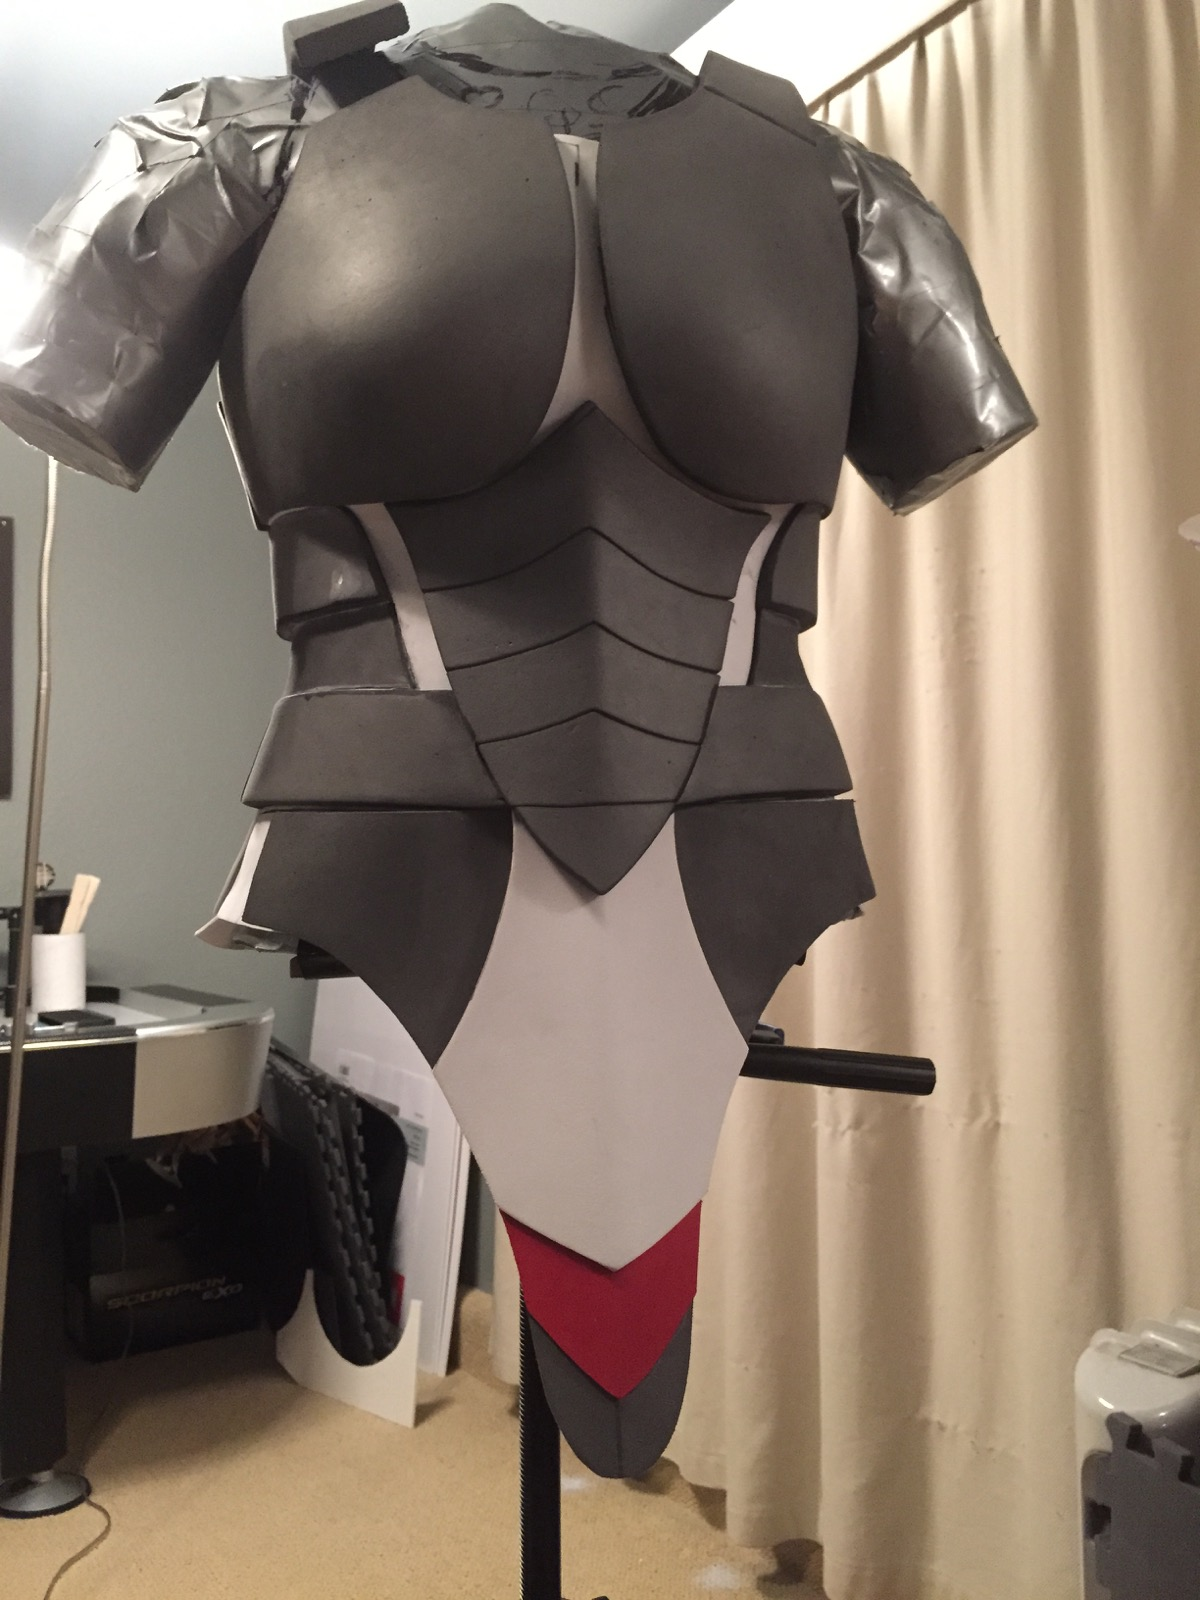 Test fitting the codpiece to the main armor.